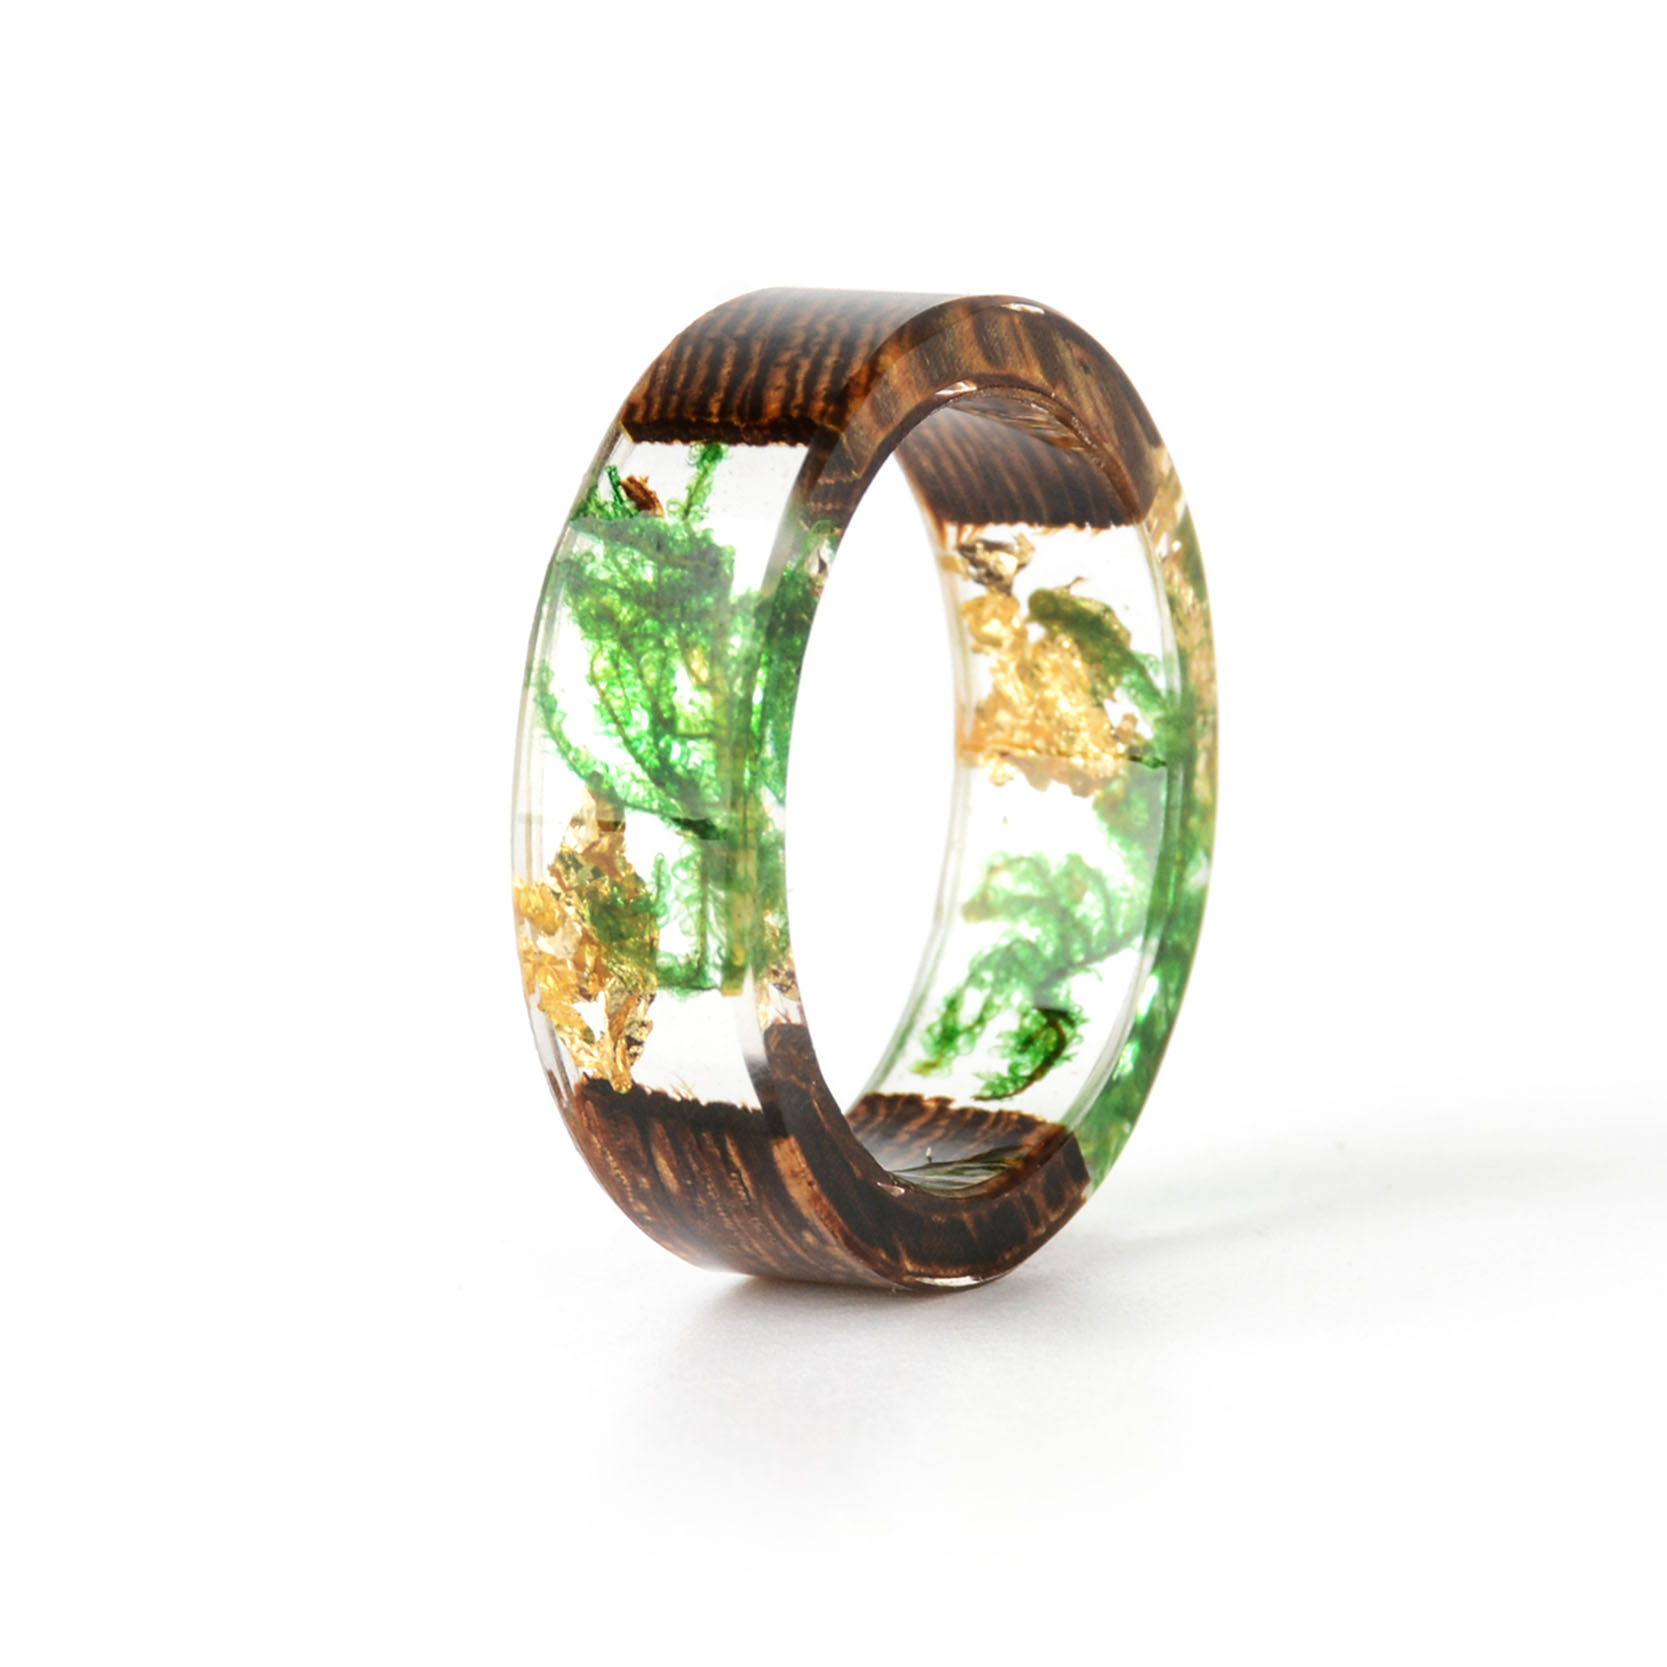 HTB1ut77KhWYBuNjy1zkq6xGGpXan - Hot Sale Handmade Wood Resin Ring Dried Flowers Plants Inside Jewelry Resin Ring Transparent Anniversary Ring for Women